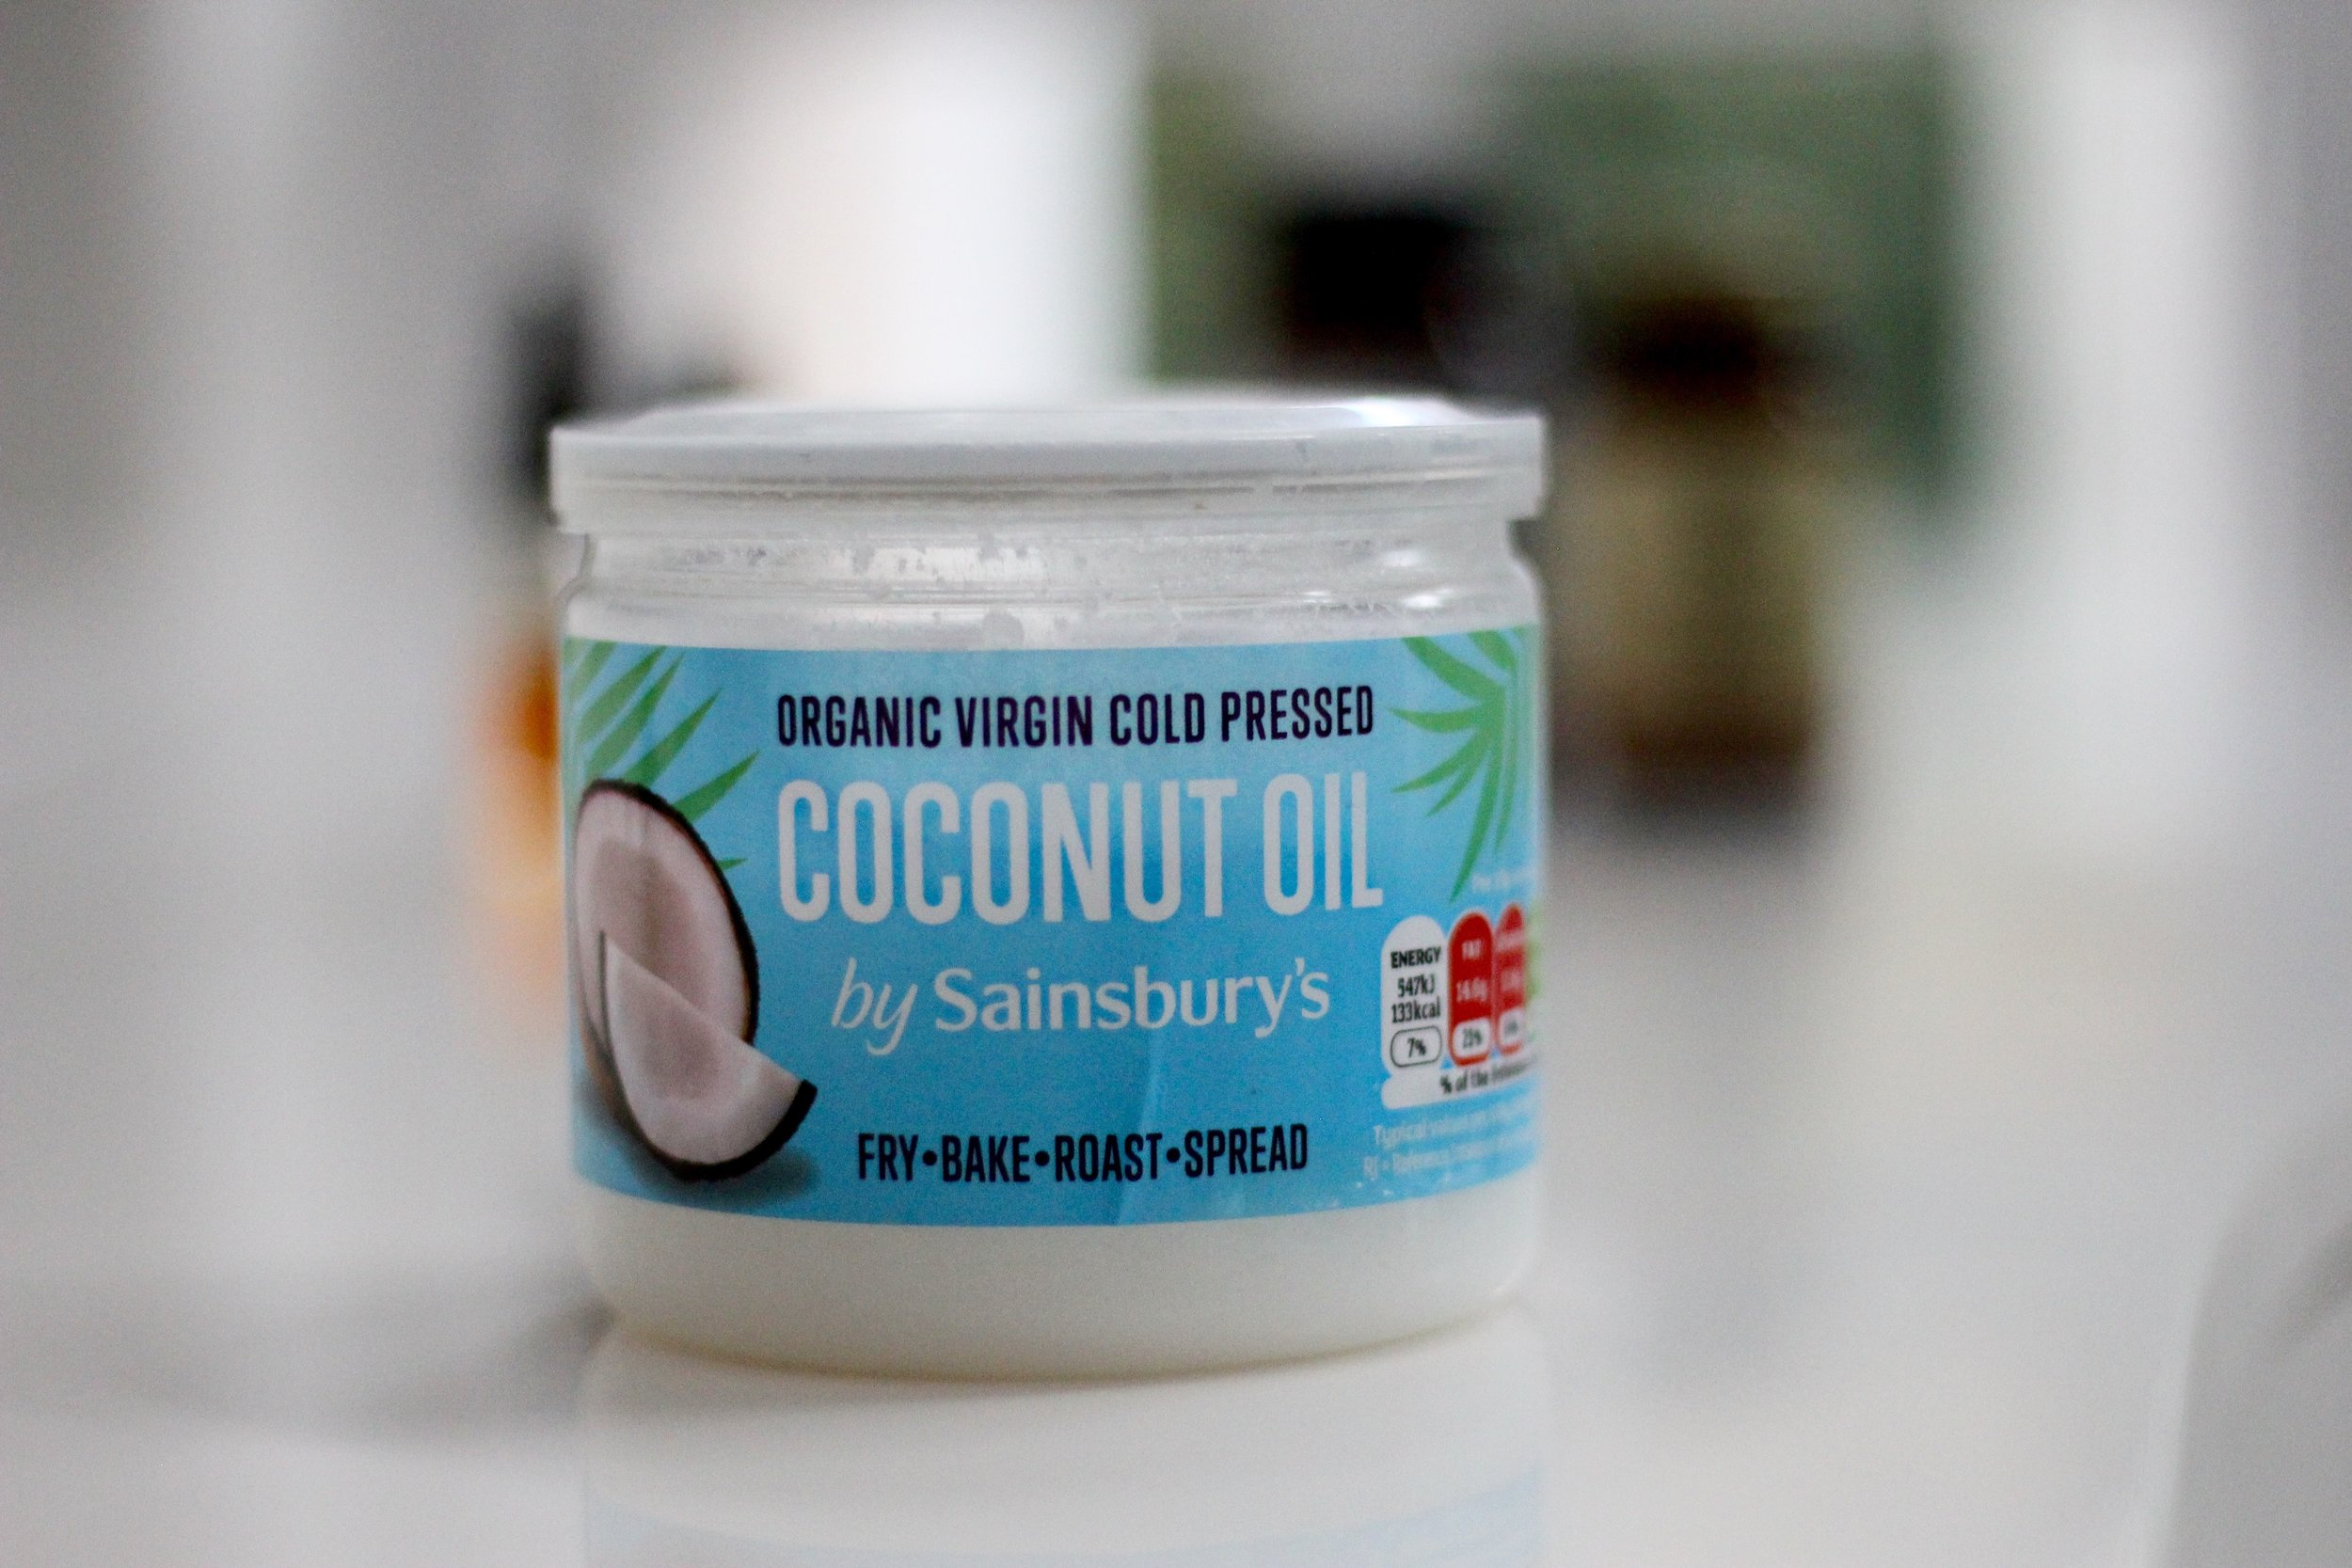 Coconut oil from Sainsbury's